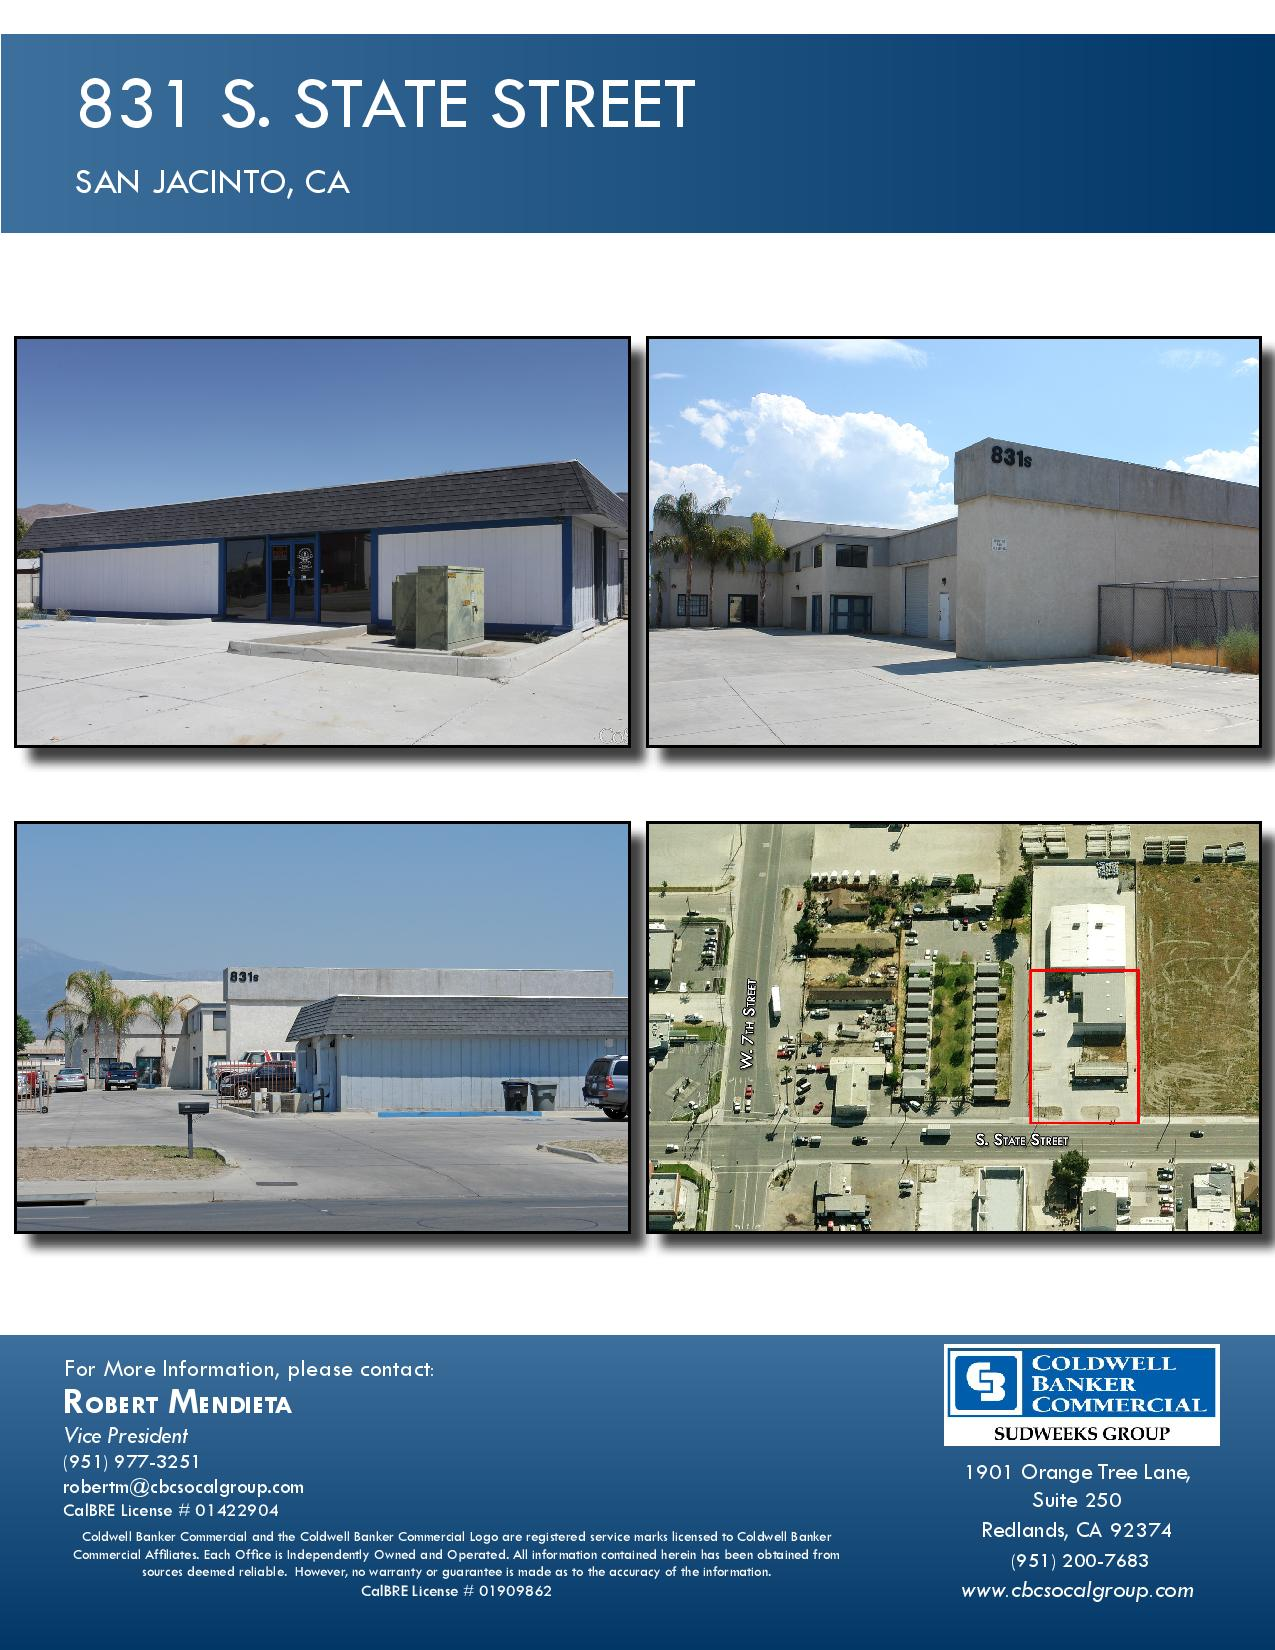 Retail space for lease archives commercial real estate inland empire - Small commercial rental space photos ...